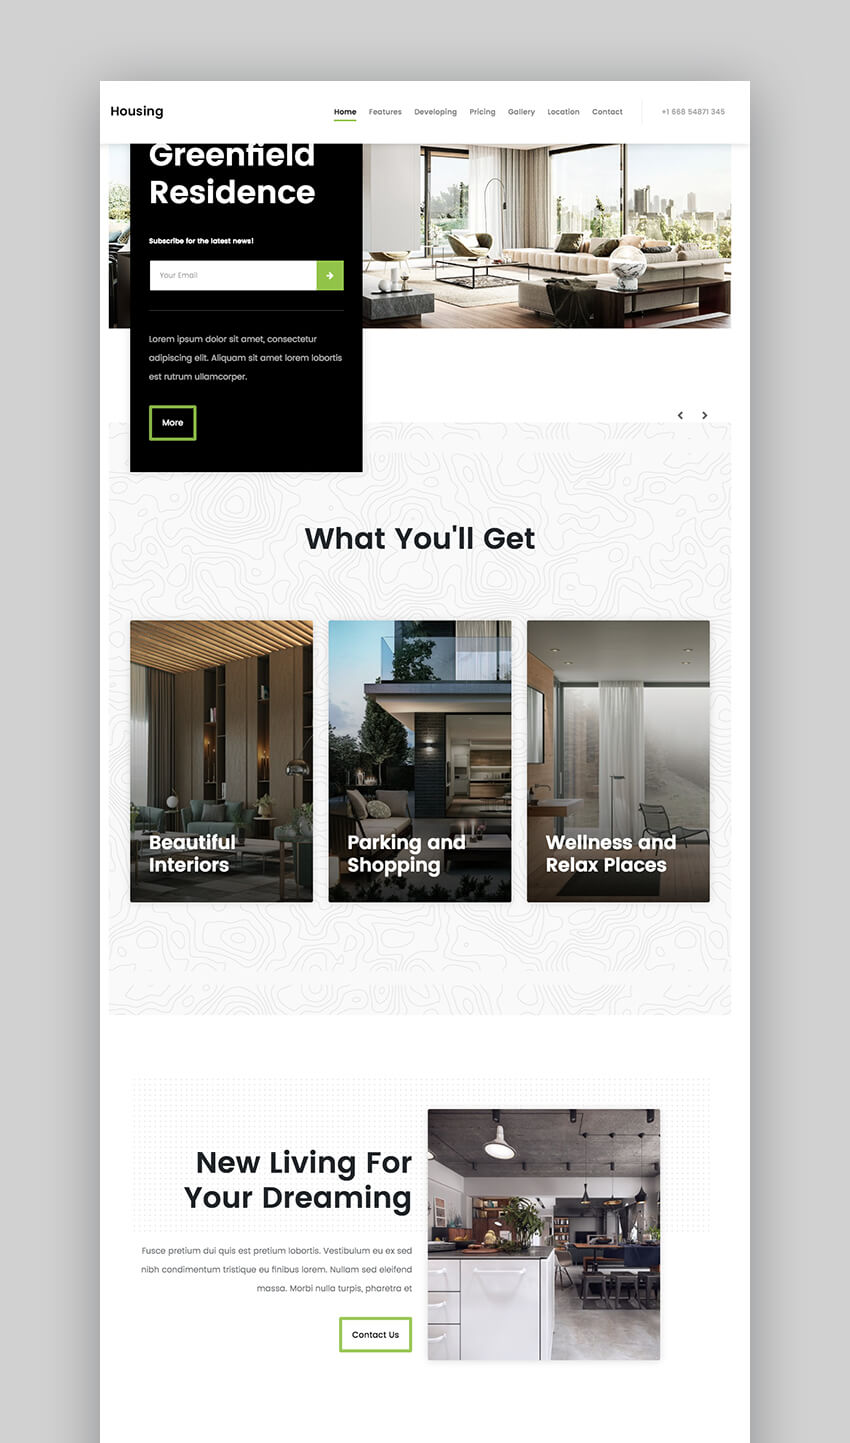 Housing realtor landing page template